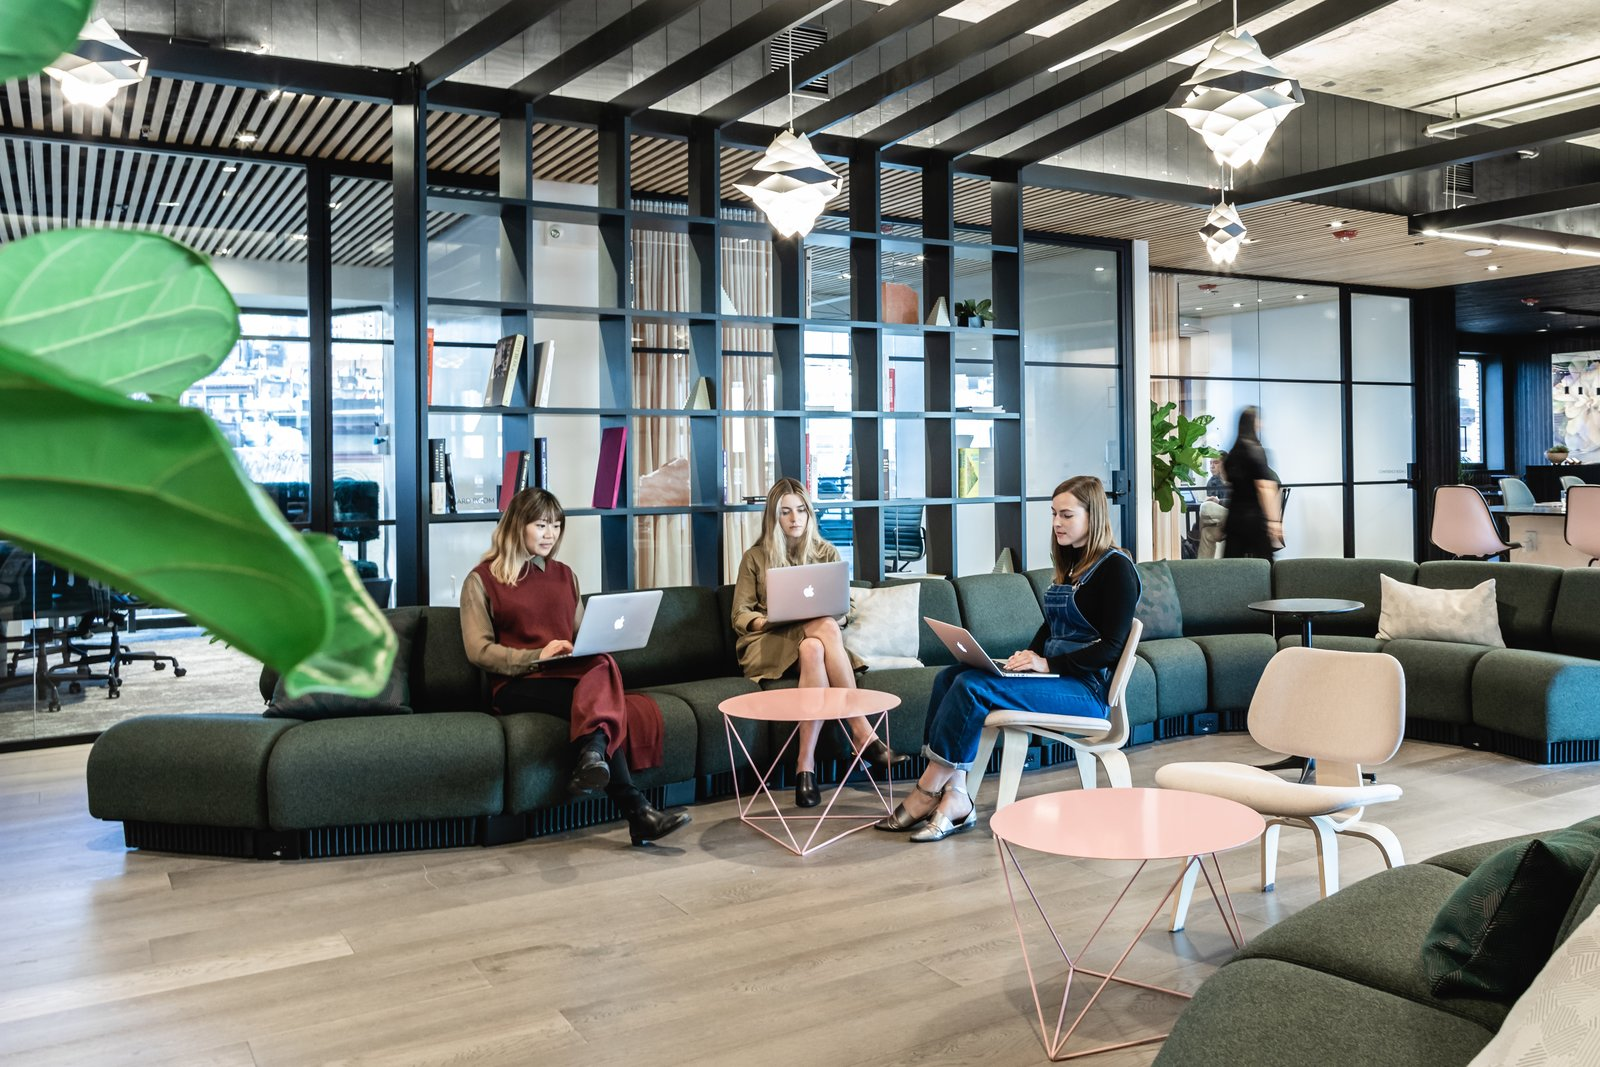 Dwell Moves Into Canopy, the Chic Co-Working Space by Yves Behar and Amir Mortazavi